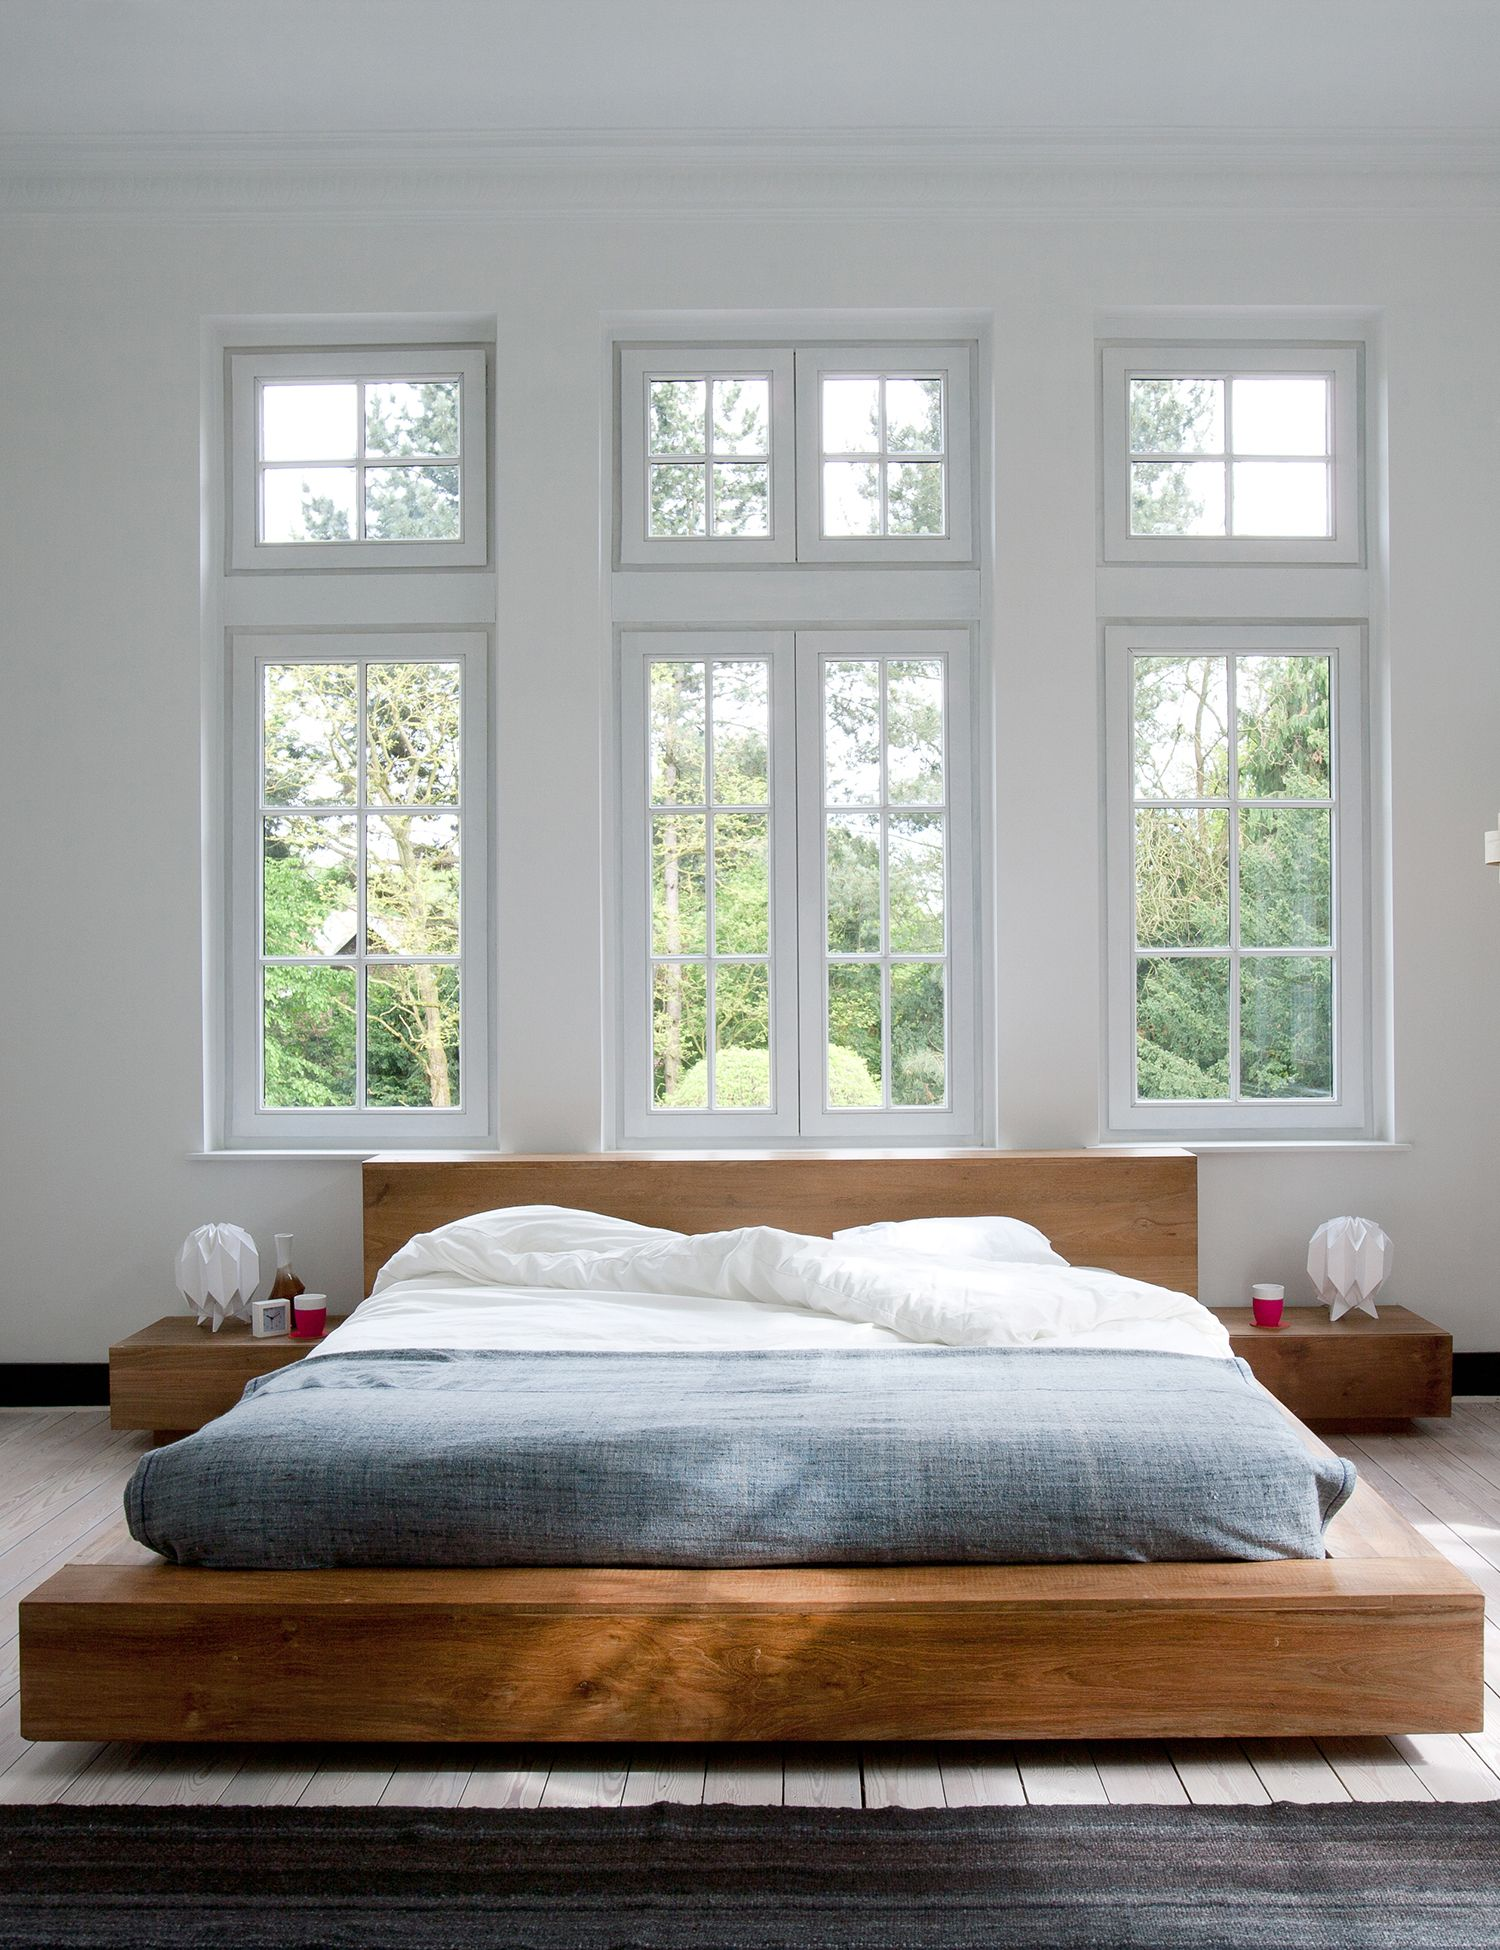 Madra Bed Idee Deco Chambre Moderne Inspiration Chambre A Coucher Et Chambre A Coucher Lit